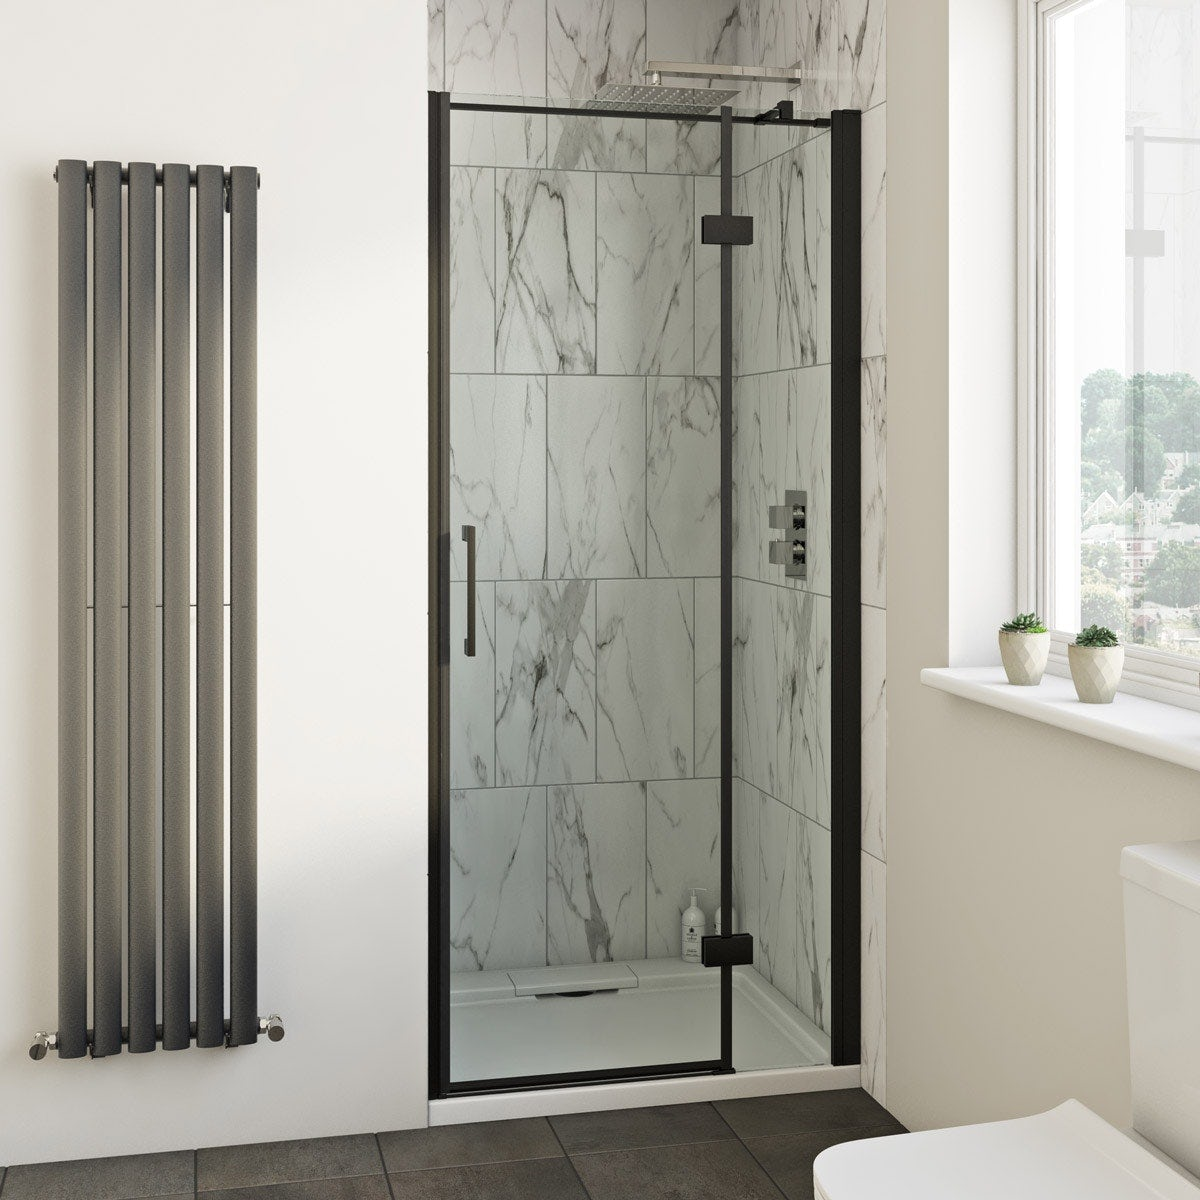 Mode Cooper black hinged easy clean shower door offer pack